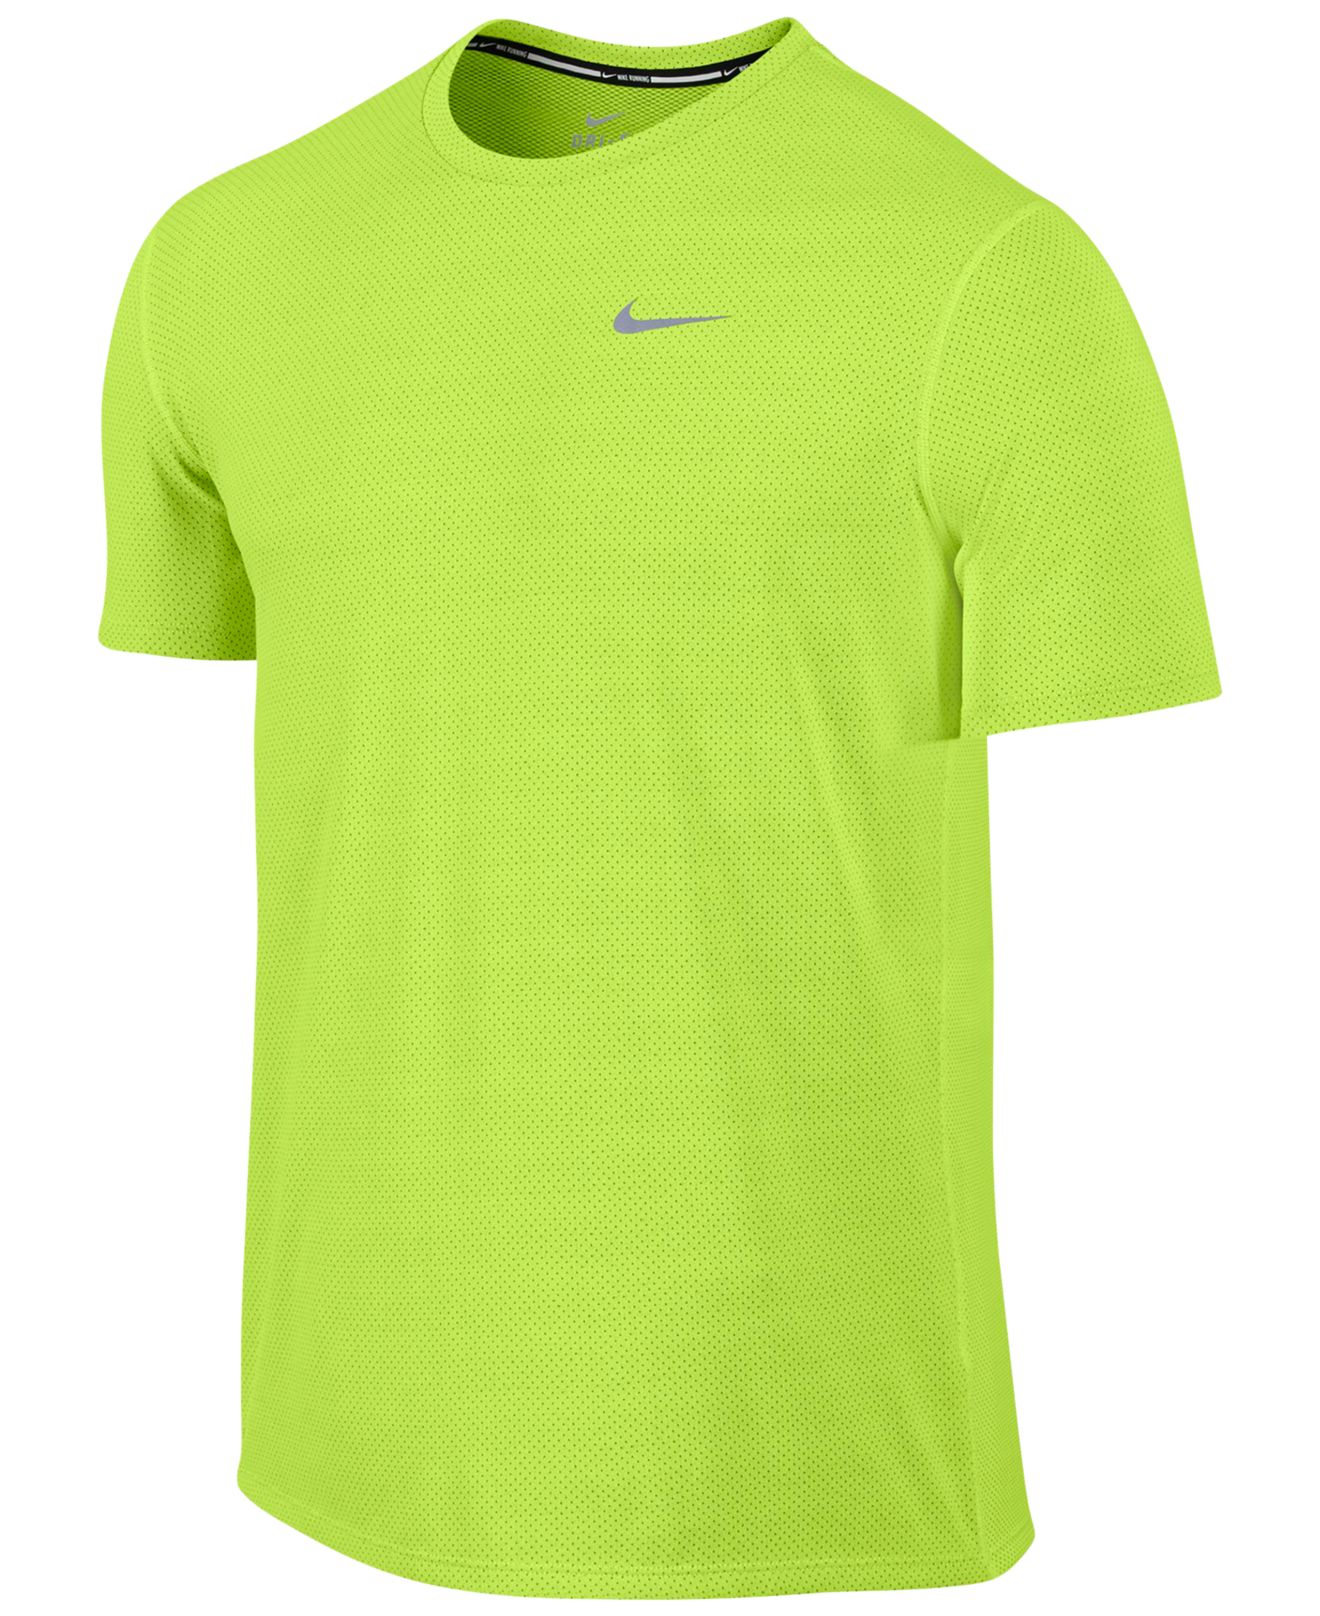 clearance sale release info on new arrivals Men's Contour Dri-fit Running Shirt